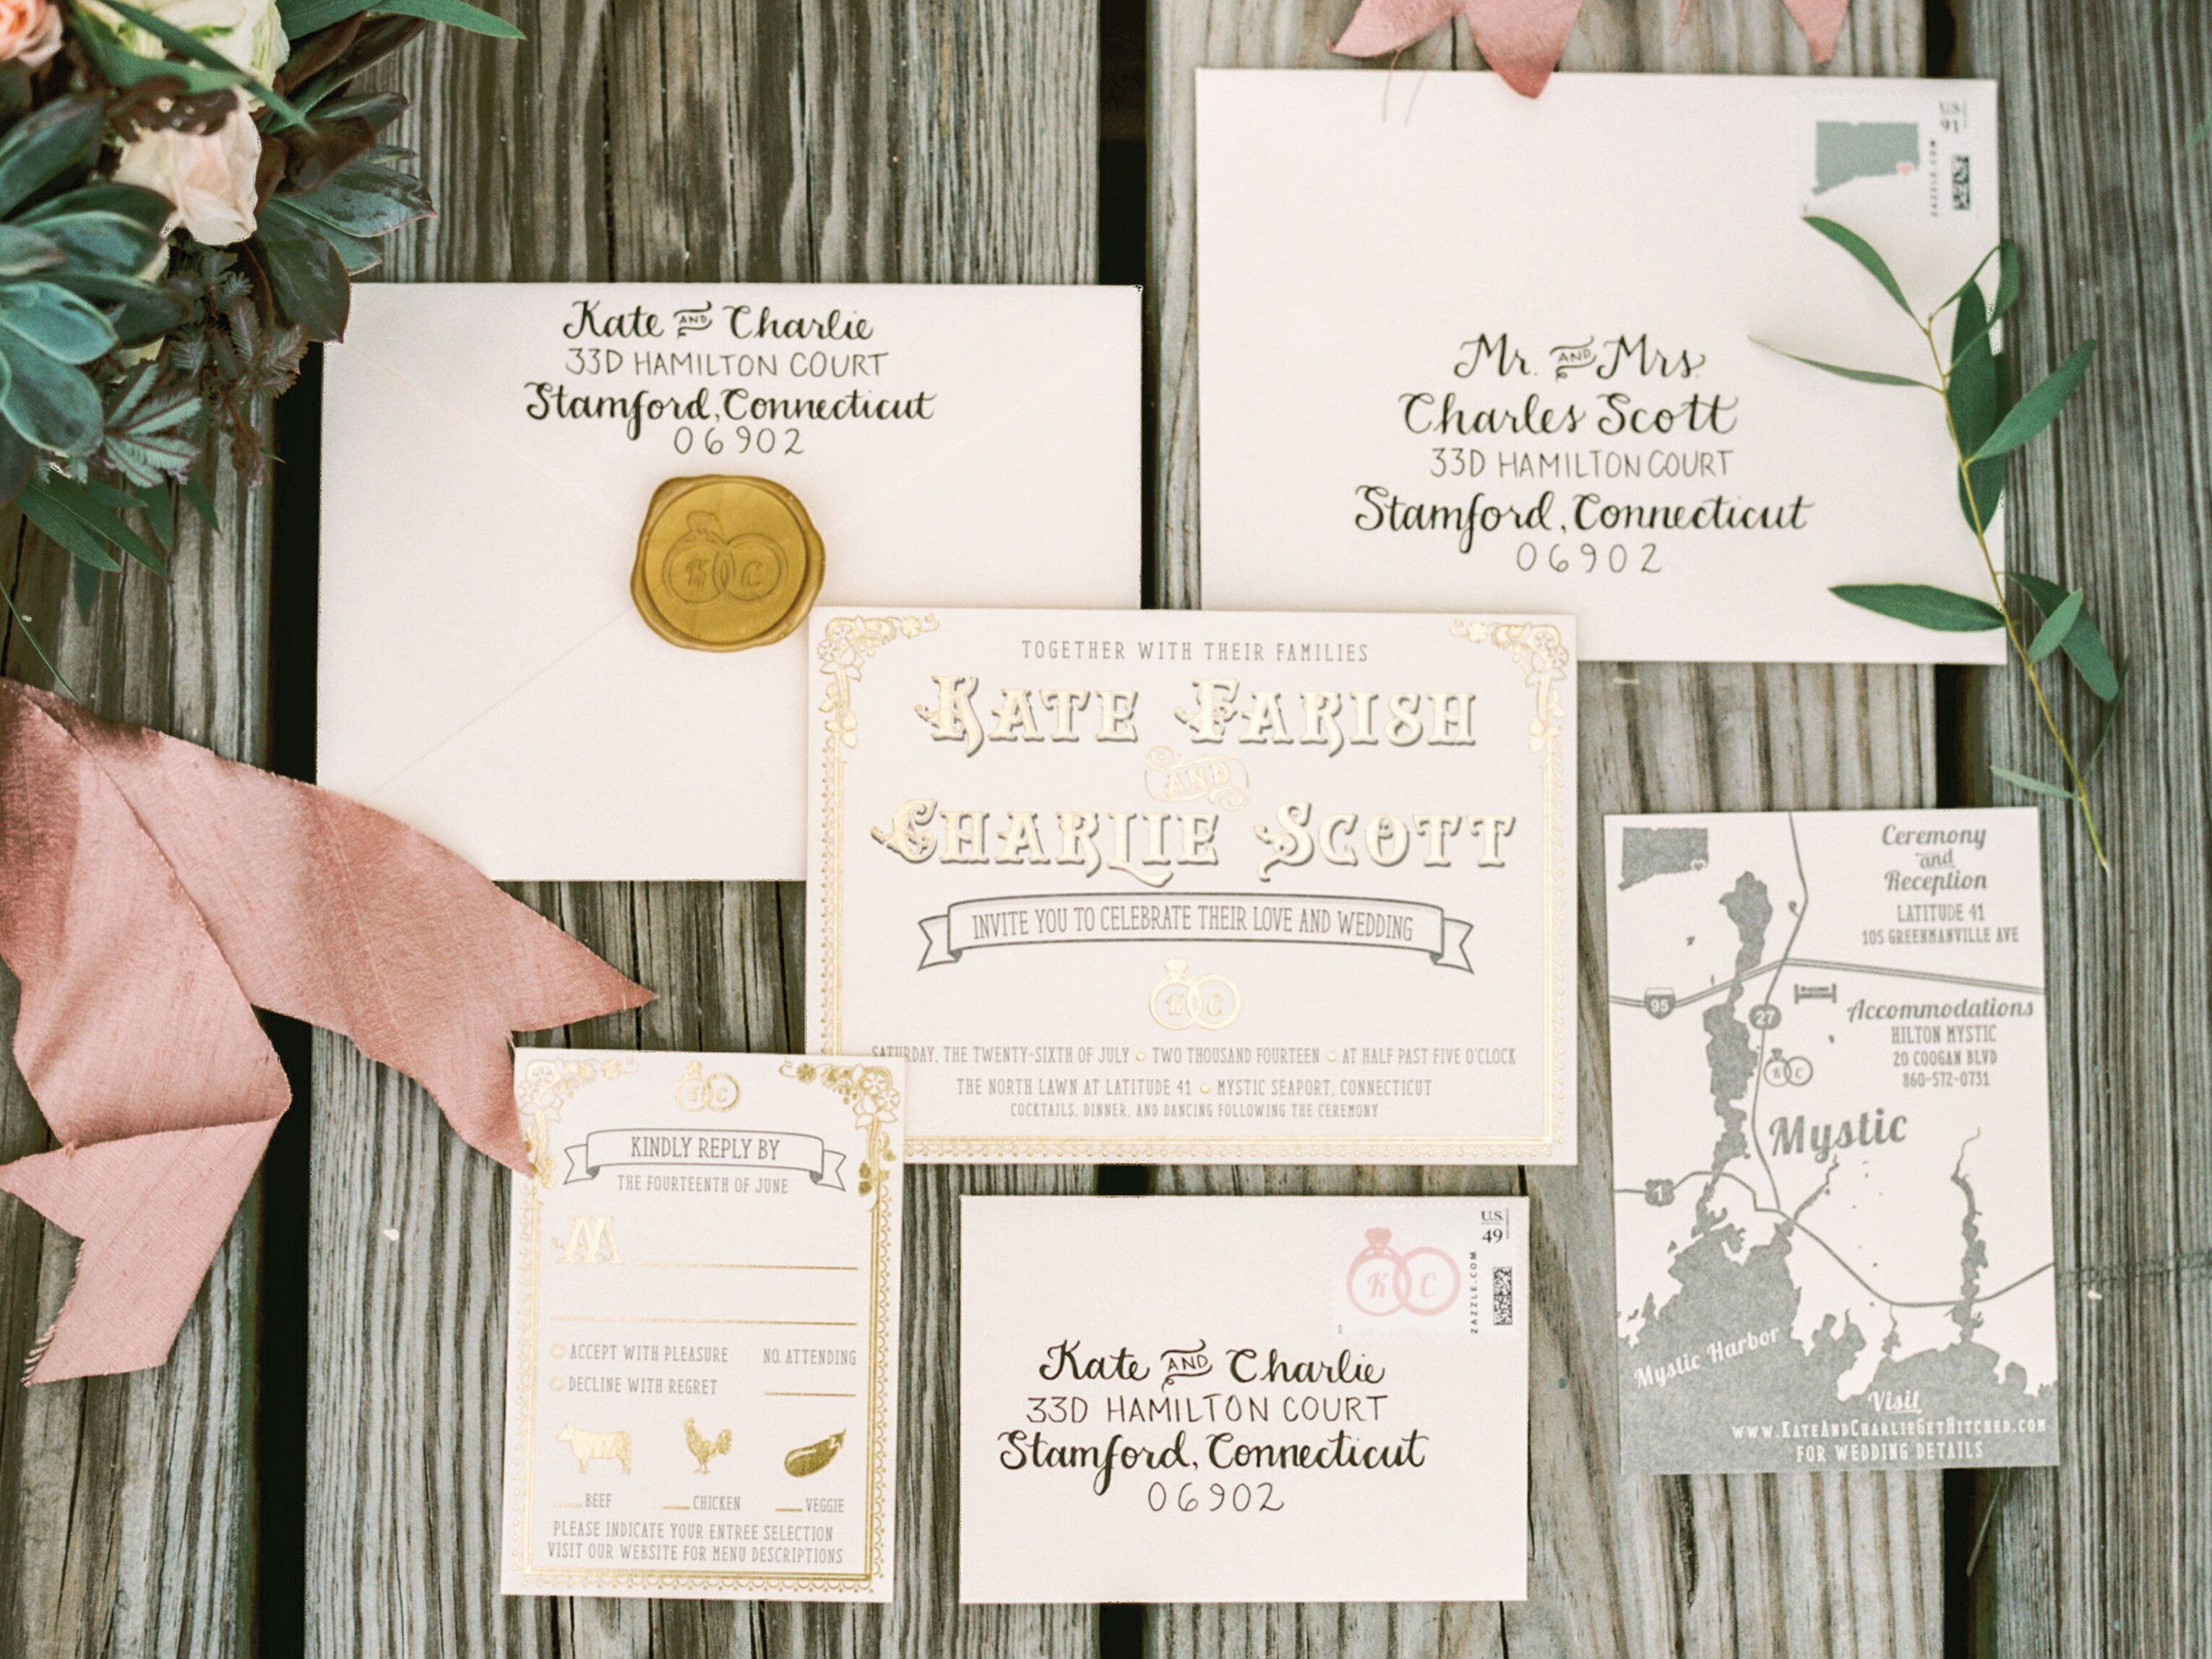 Wedding Invitation Picture: Wedding Invitations: A Complete Checklist